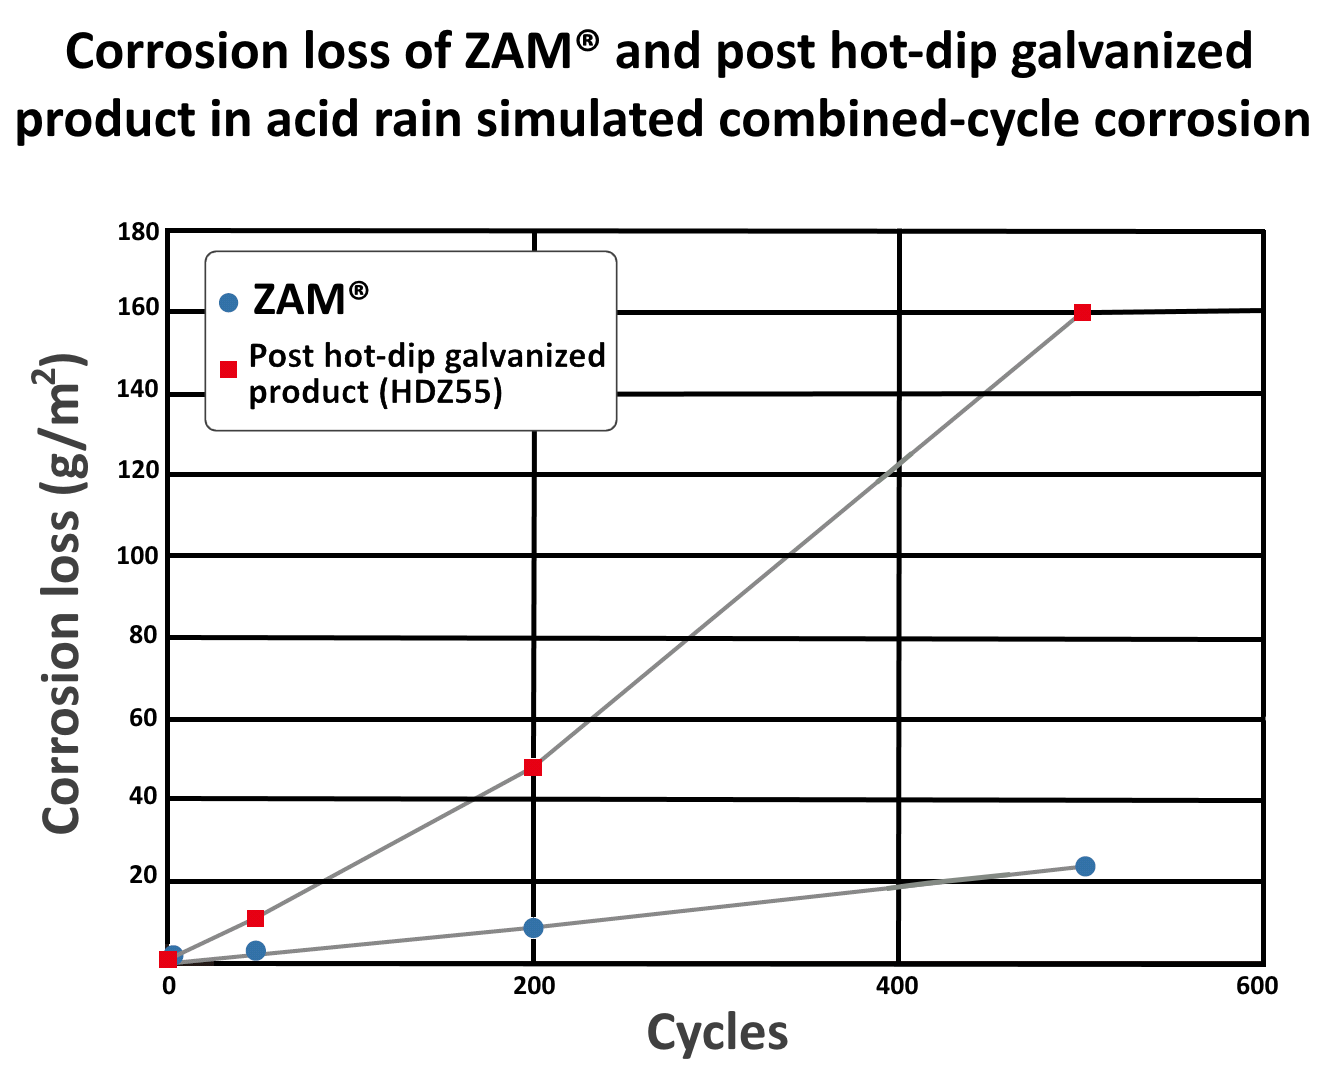 Graph showing corrosion loss of ZAM® and post hot-dip galvanized product in acid rain test